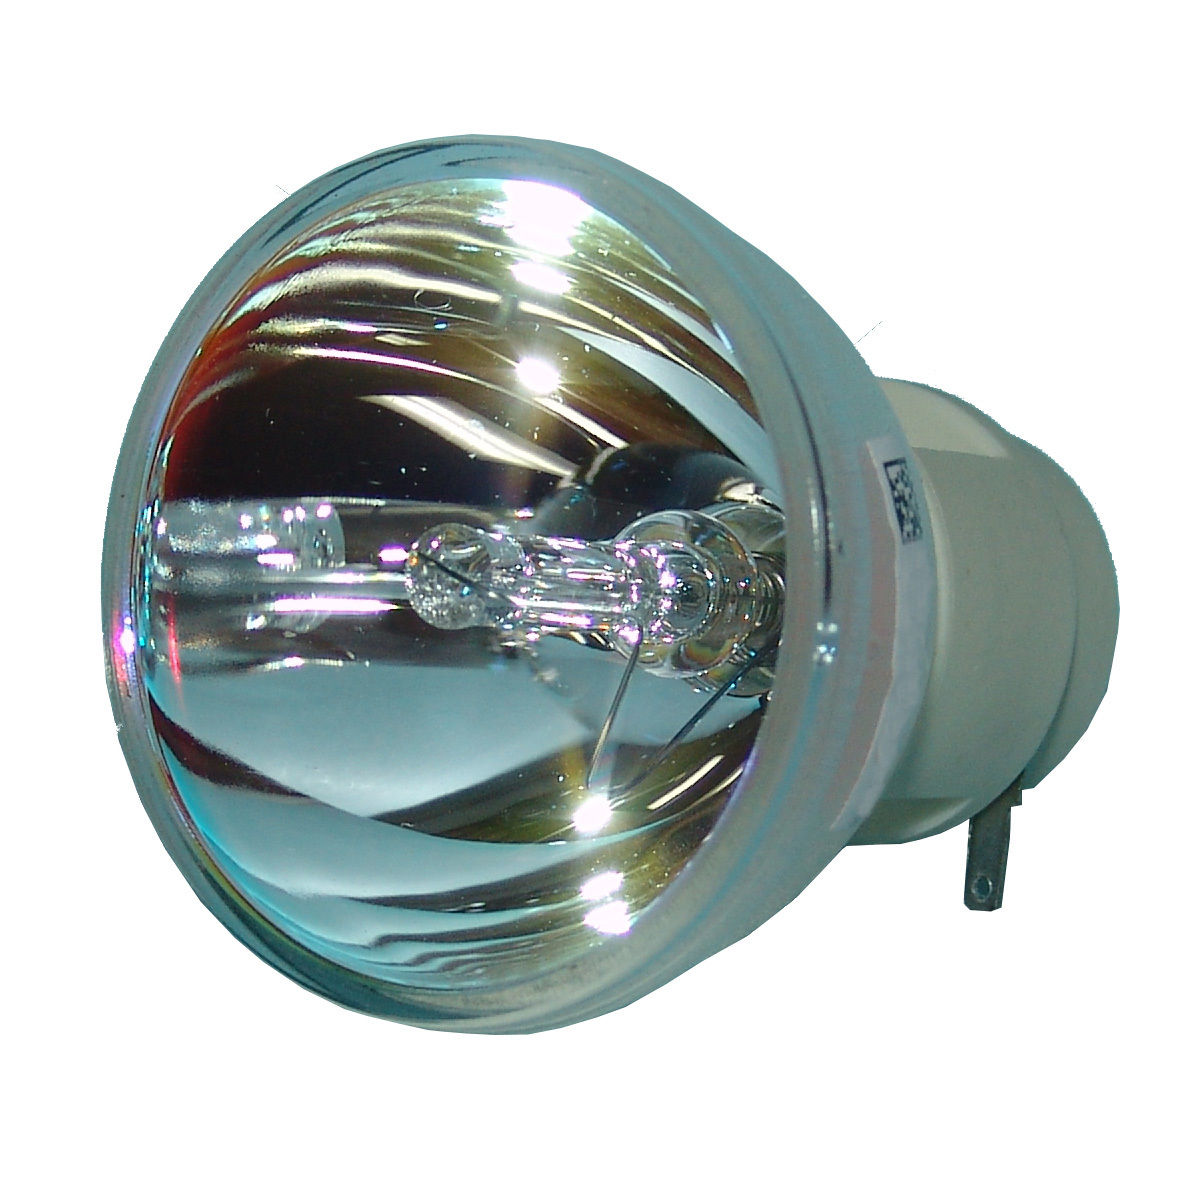 Compatible Bare Bulb P-VIP 180/0.8 E20.8 5J.J0W05.001 For BENQ W1000 / W1000+ / W1050 Projector Lamp Bulbs without housing compatible bare bulb p vip 120 132w 1 0 p22h for projector lamp xl 2200